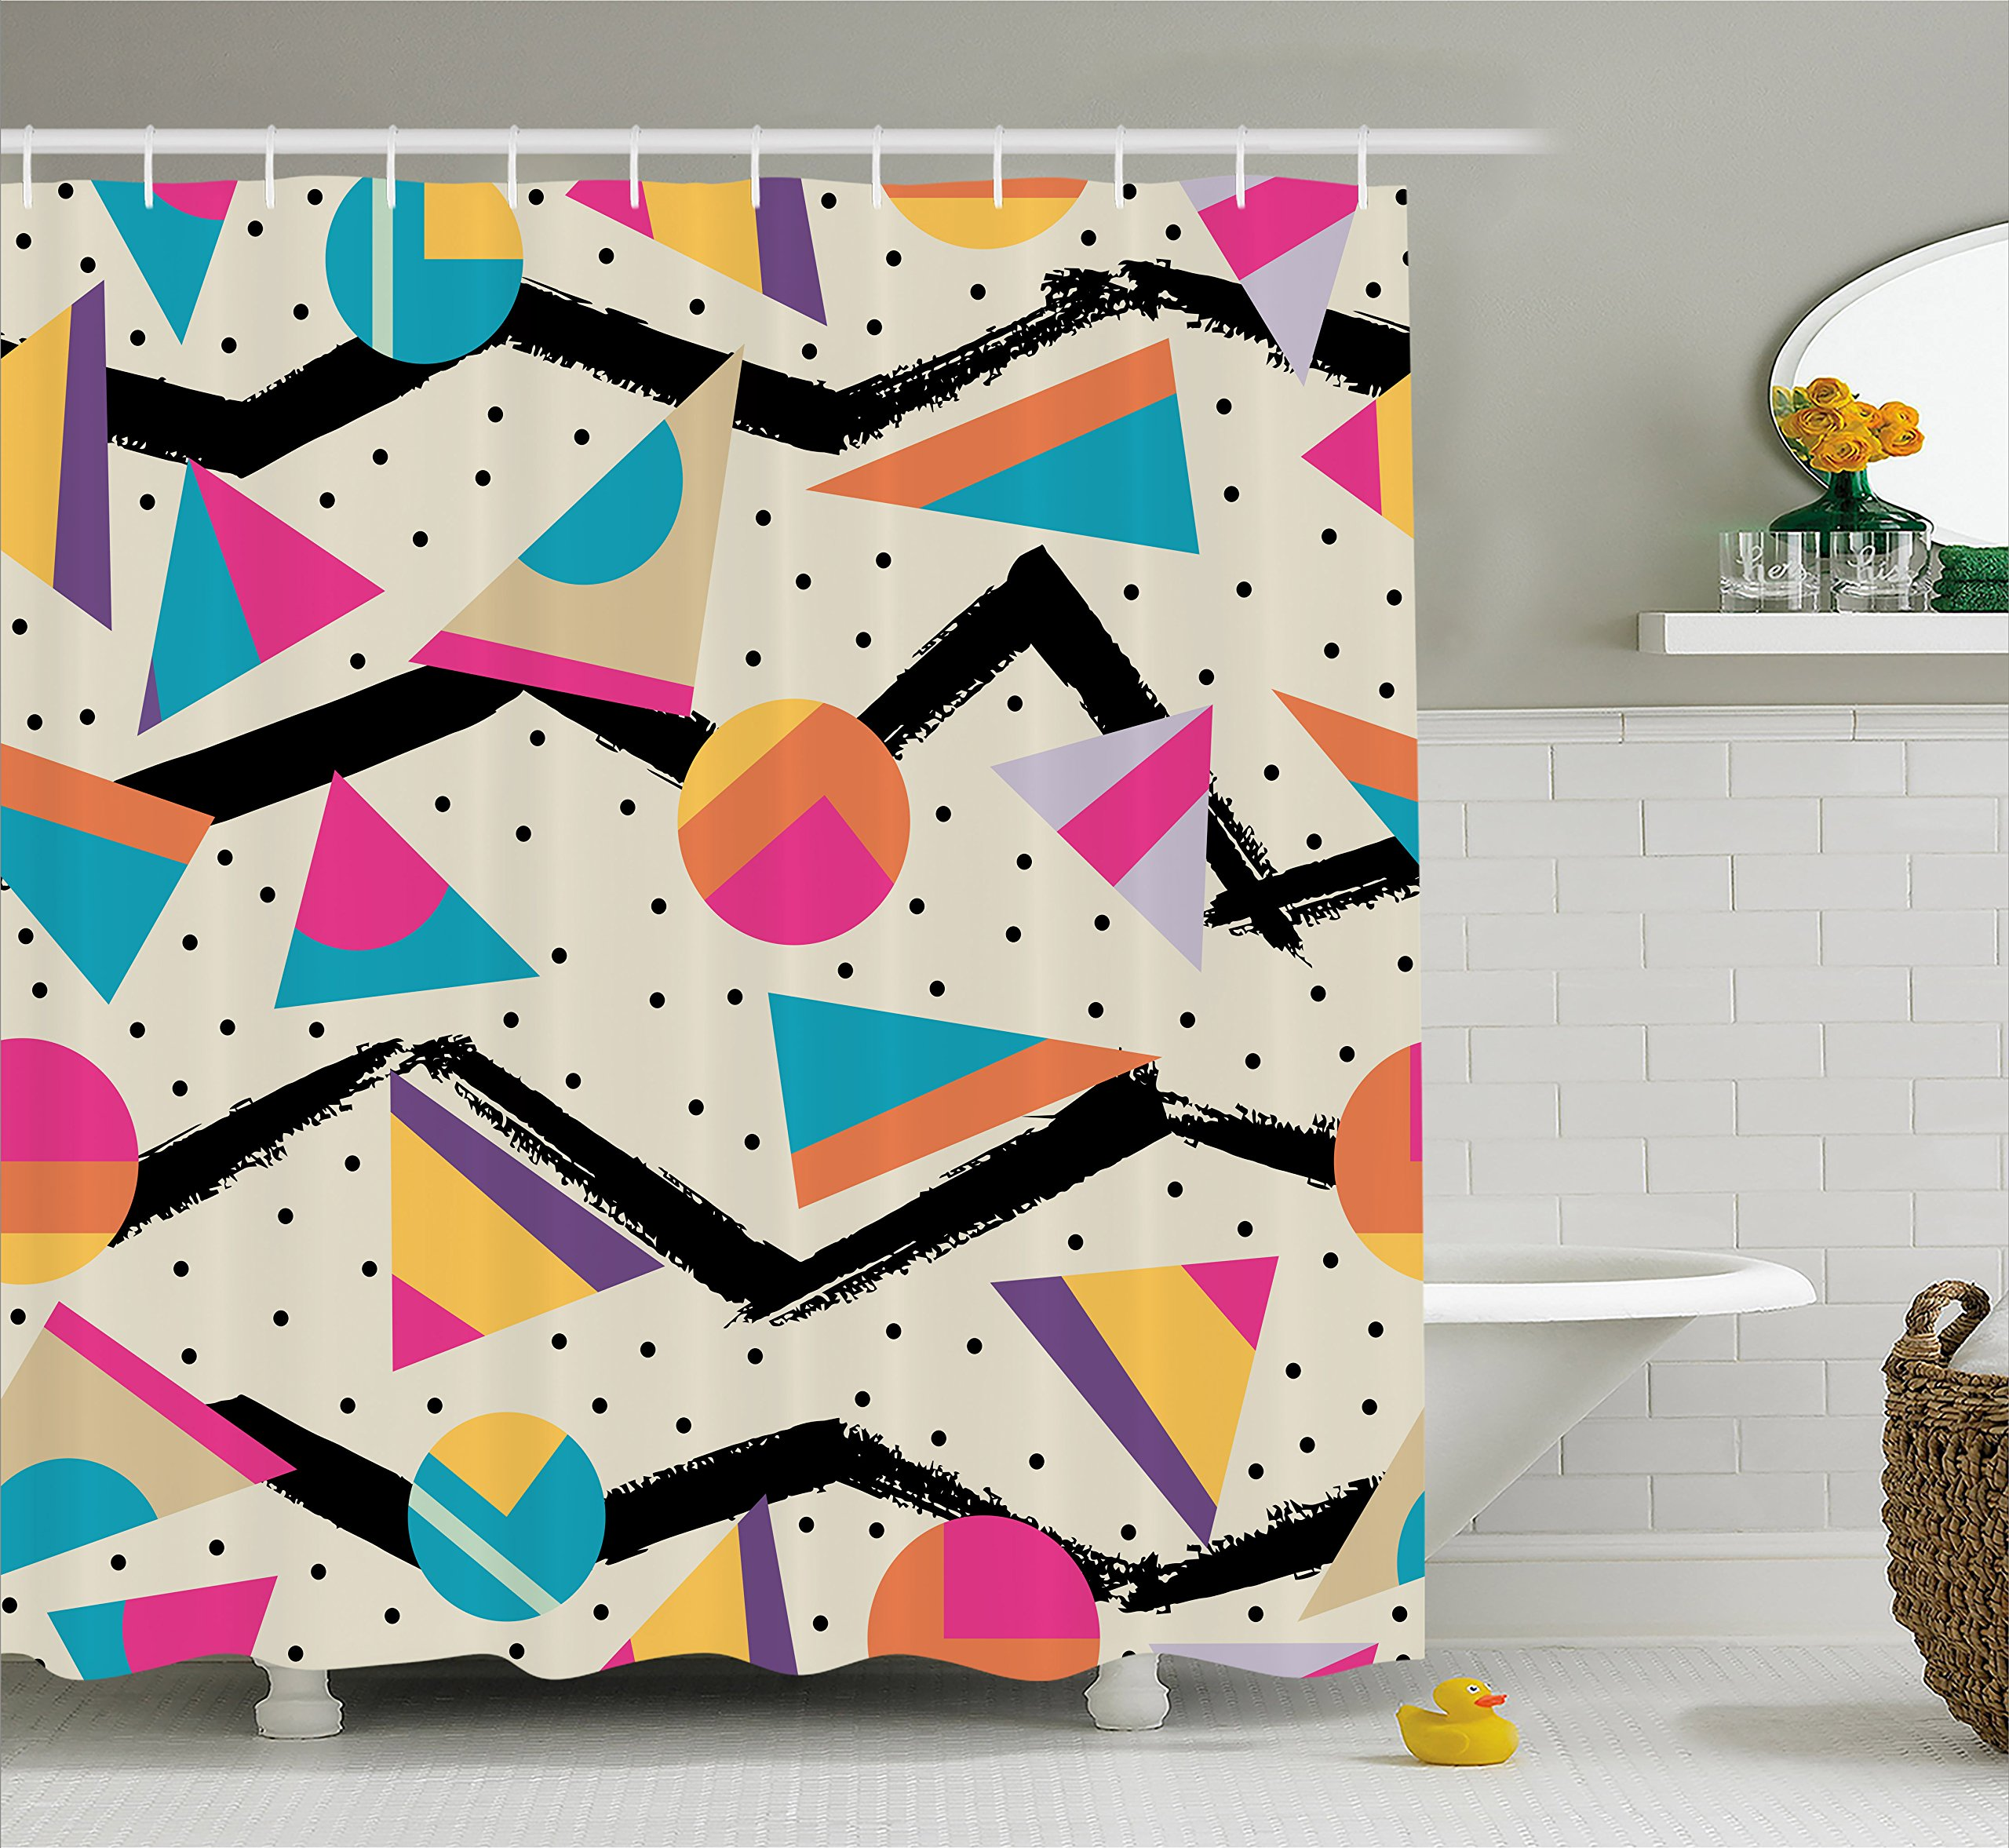 Ambesonne Indie Shower Curtain, Eighties Memphis Fashion Style Geometric Abstract Colorful Design with Dots Funky, Fabric Bathroom Decor Set with Hooks, 75 inches Long, Multicolor